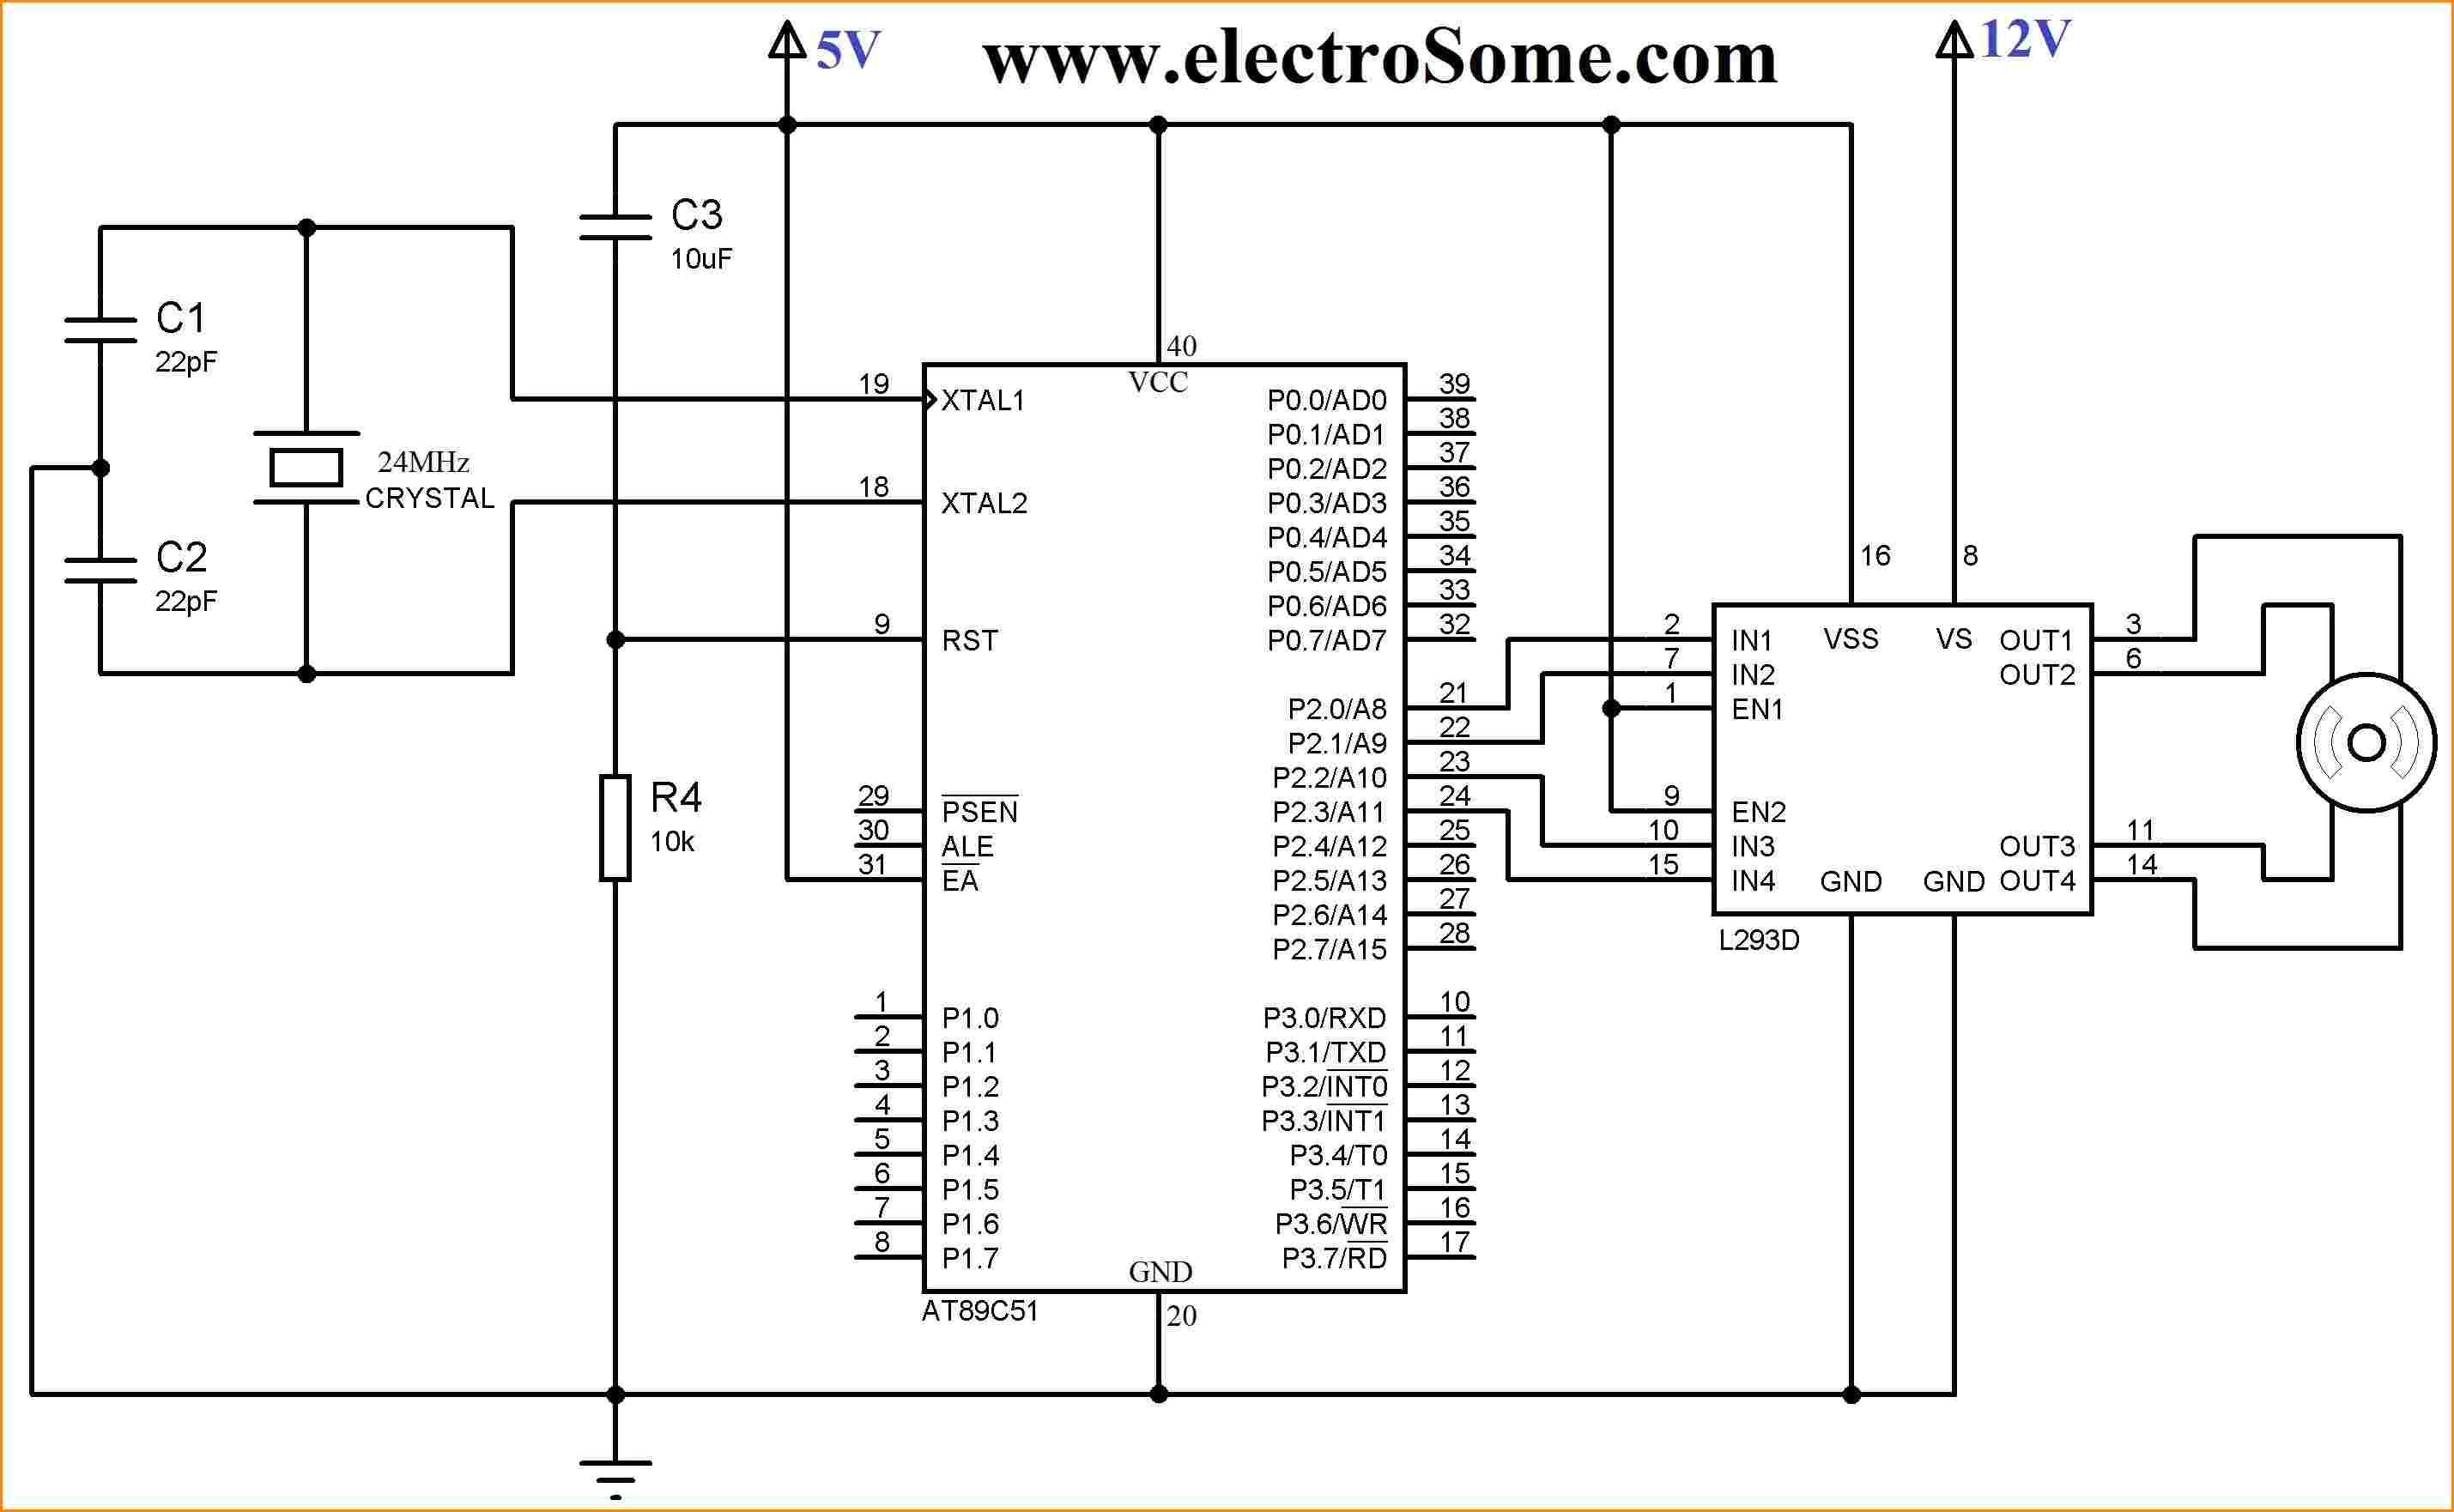 11 Bunker Hill Security Camera Wiring Diagram Worker Resume With Security Camera House Wiring Diagram